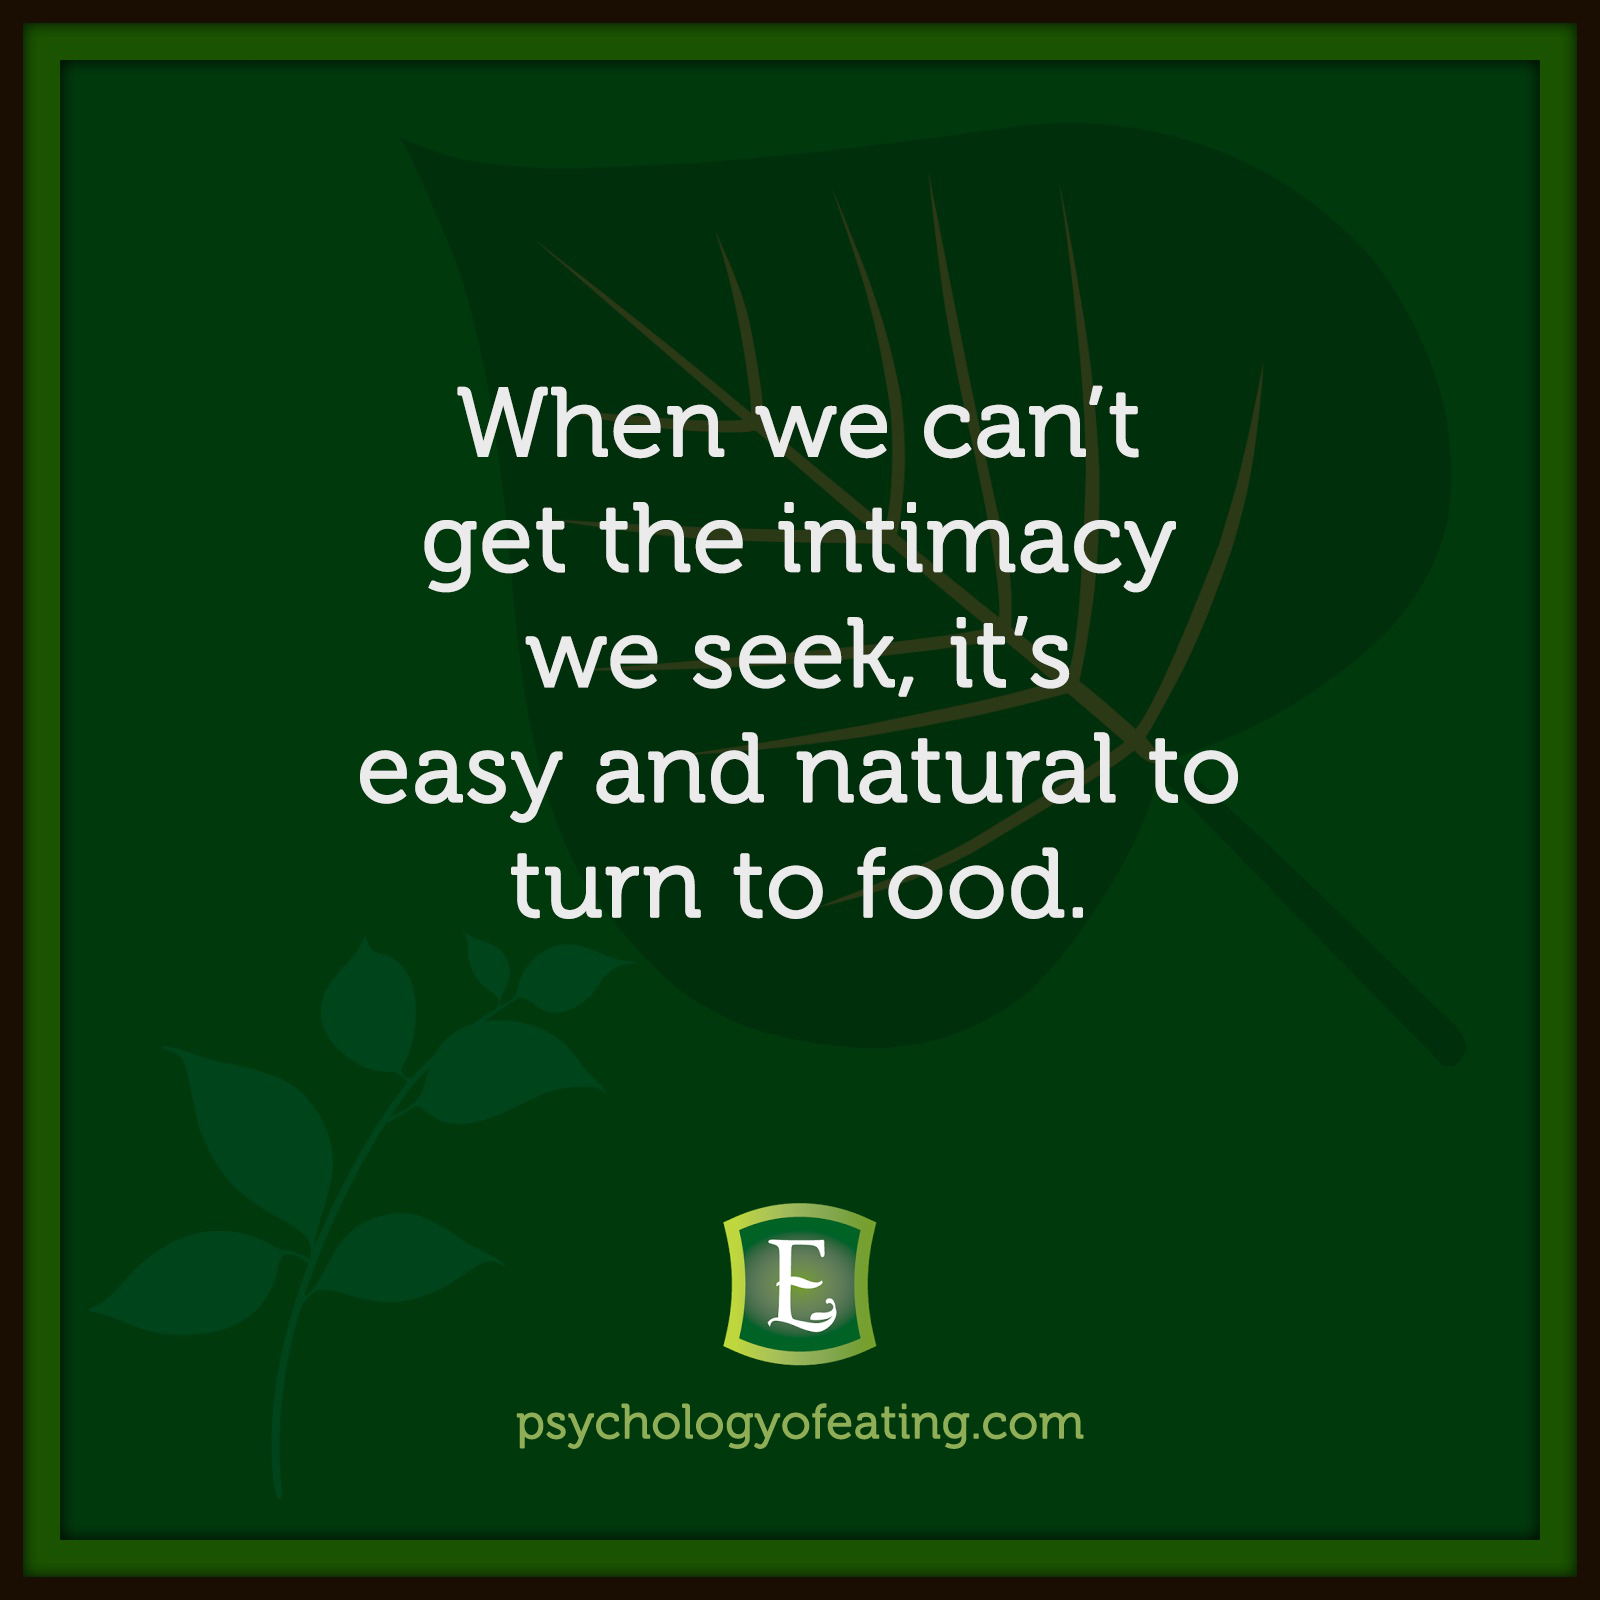 When we can't get the intimacy we seek, it's easy and natural to turn to food. #health #nutrition #eatingpsychology #IPE